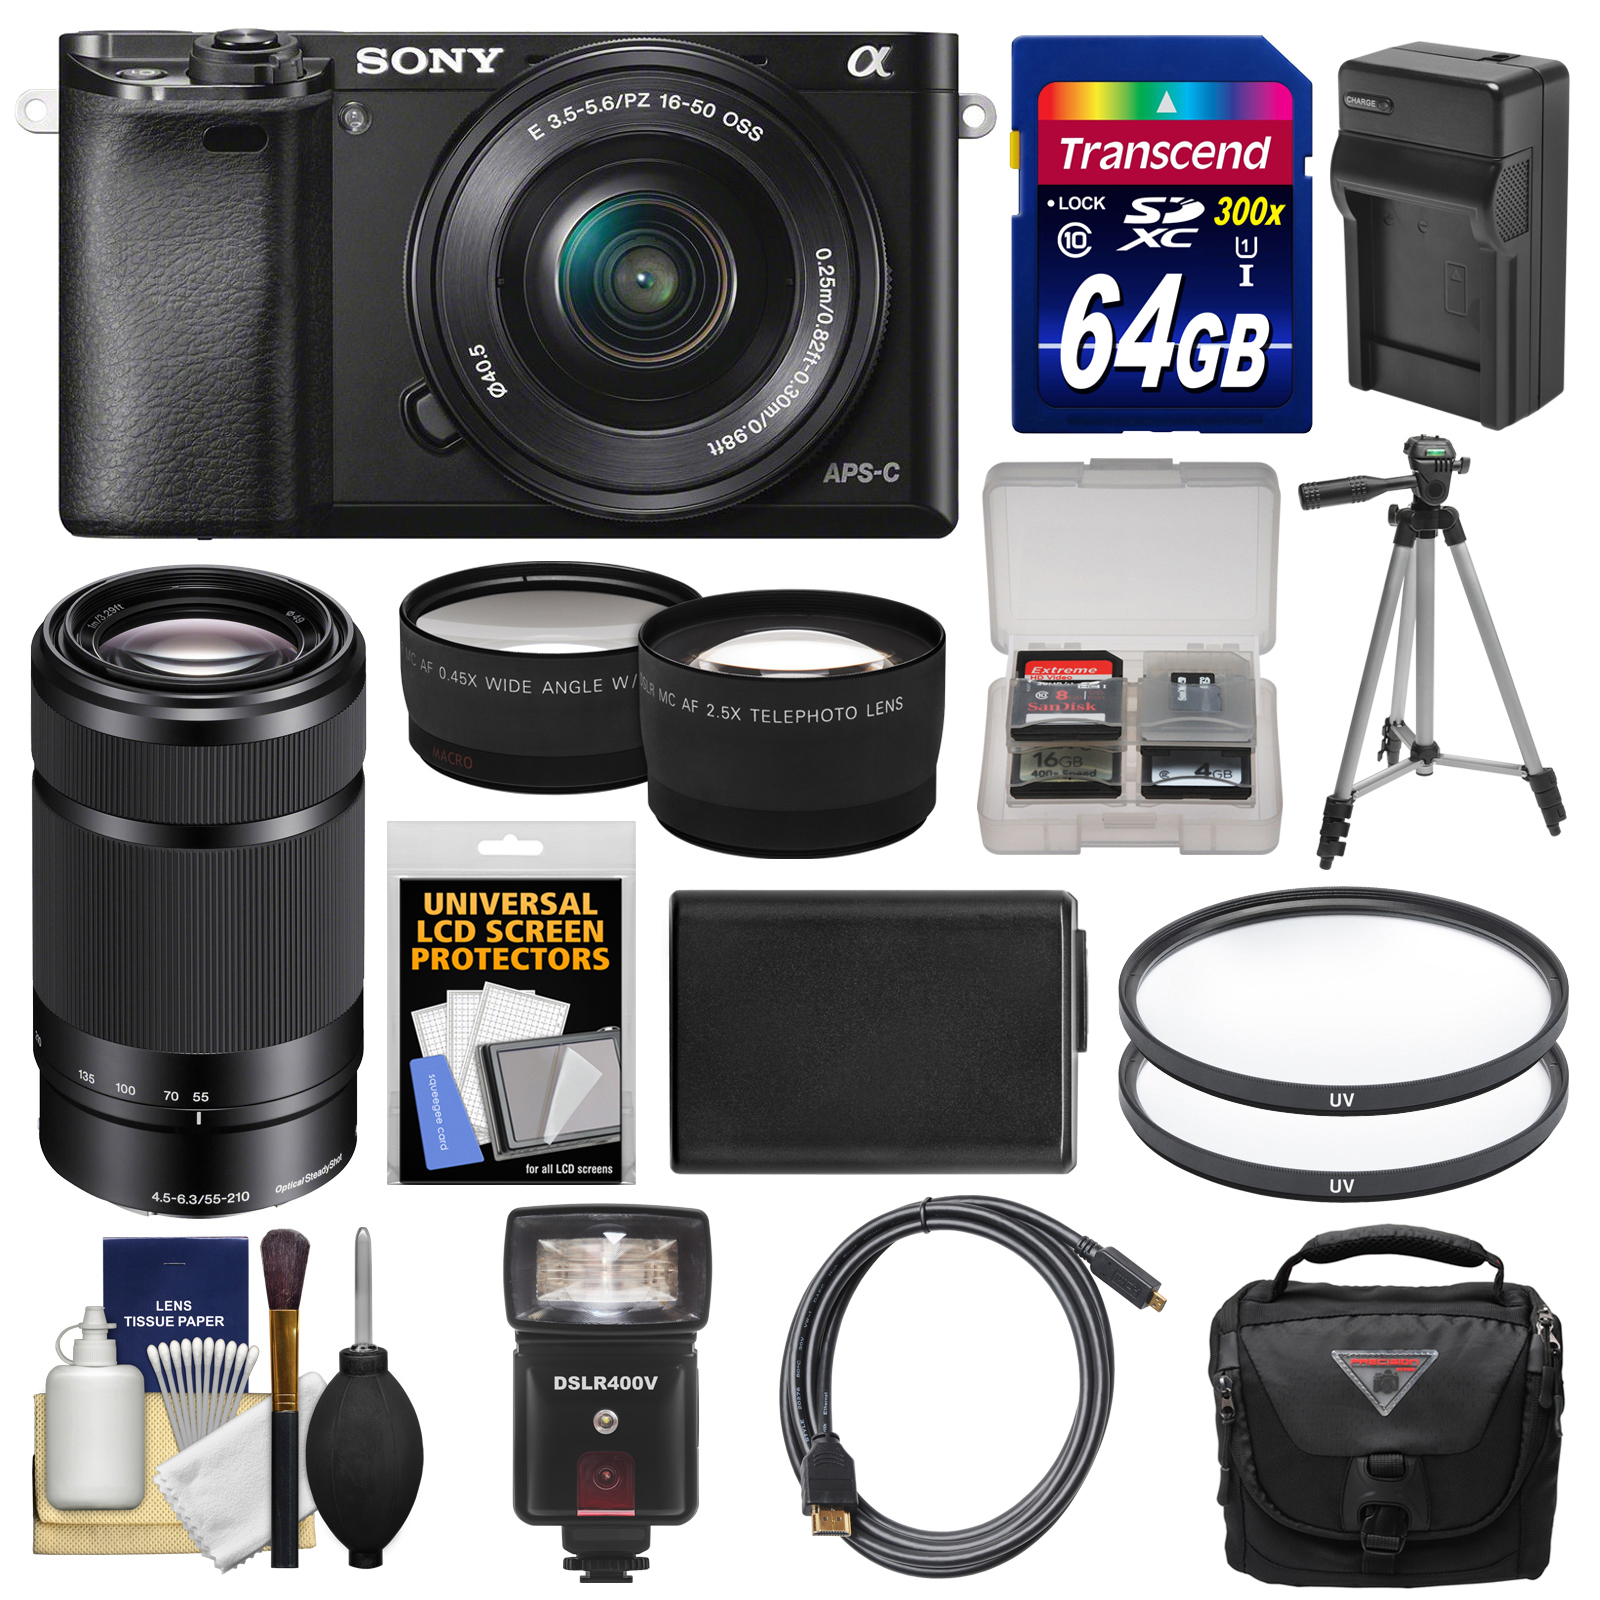 Sony Alpha A6000 Wi-Fi Digital Camera & 16-50mm & 55-210mm Lens with 64GB Card   Case   Flash   Battery/Charger   Tripod Kit